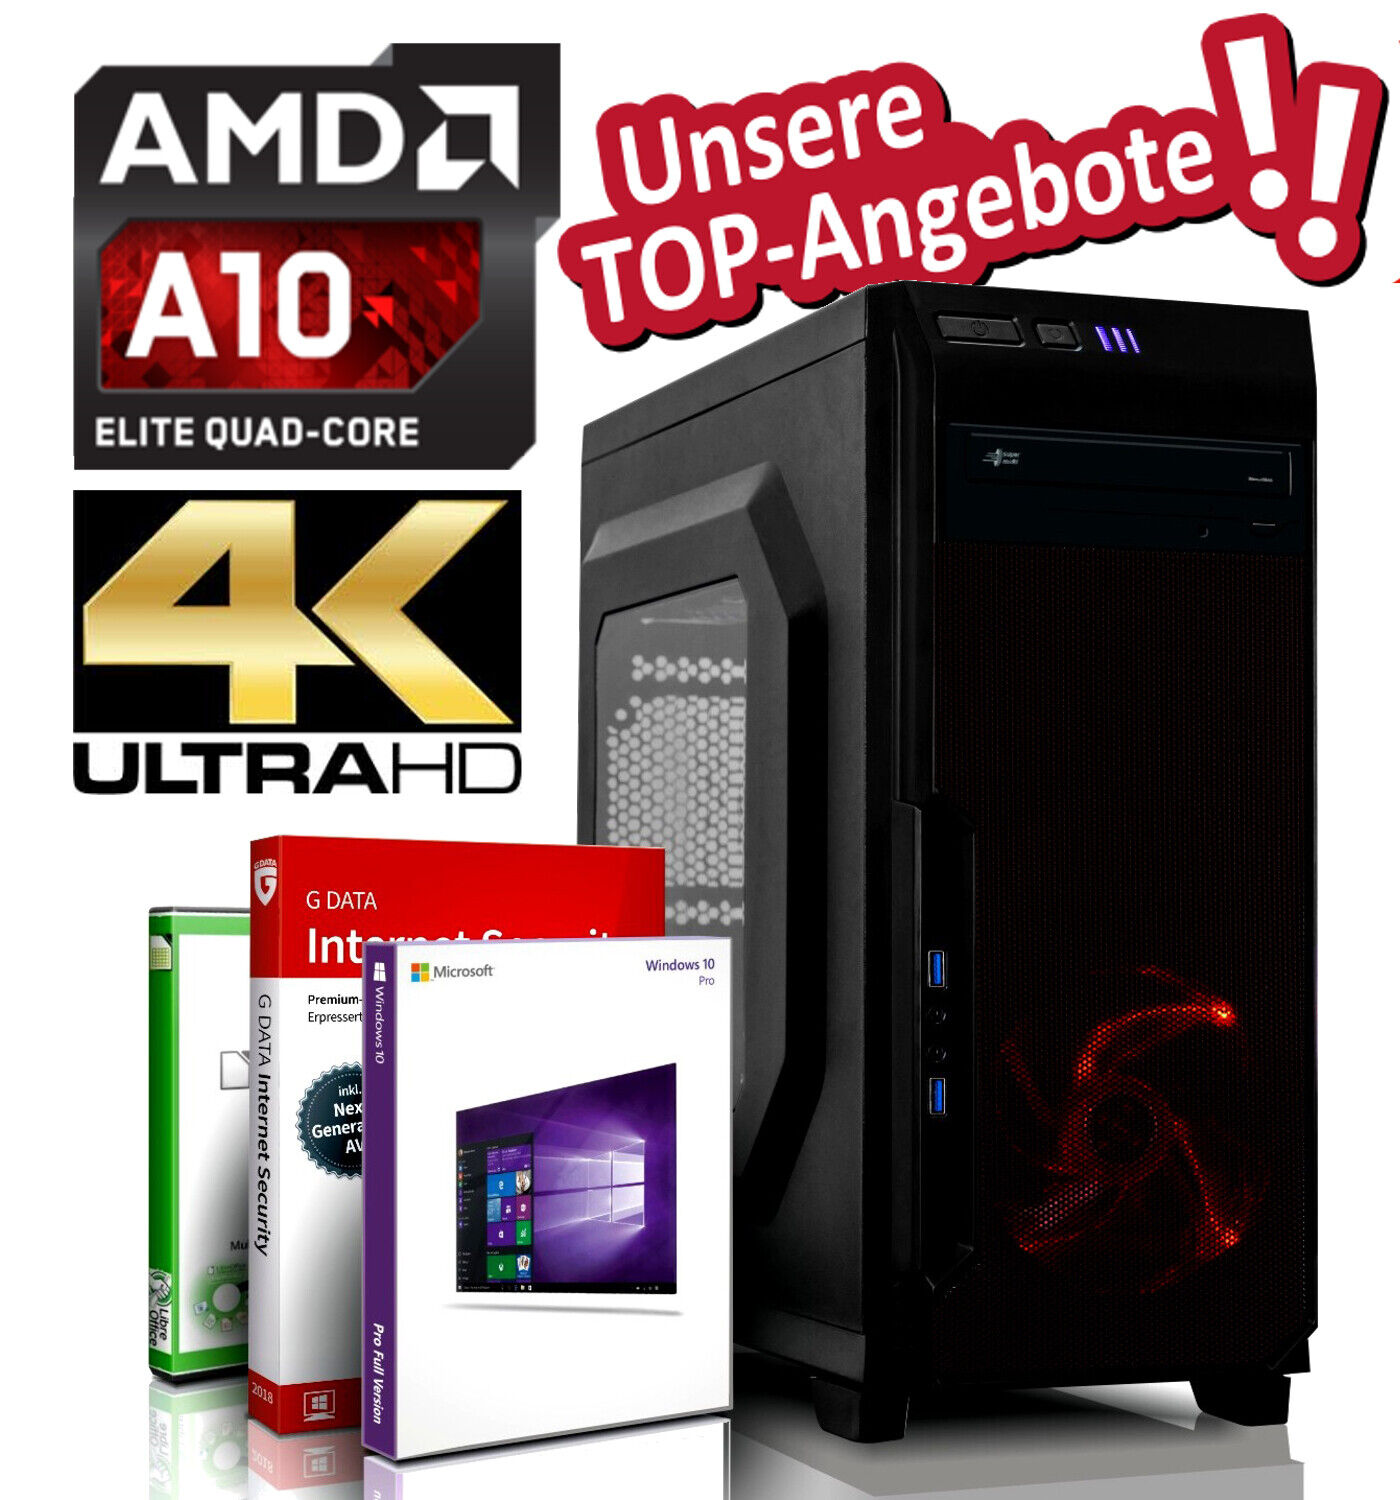 Desktop PC A10-9700 4x 3.8 GHz 16GB DDR4 256 GB SSD + 500GB Windows 10 Pro R7 4K